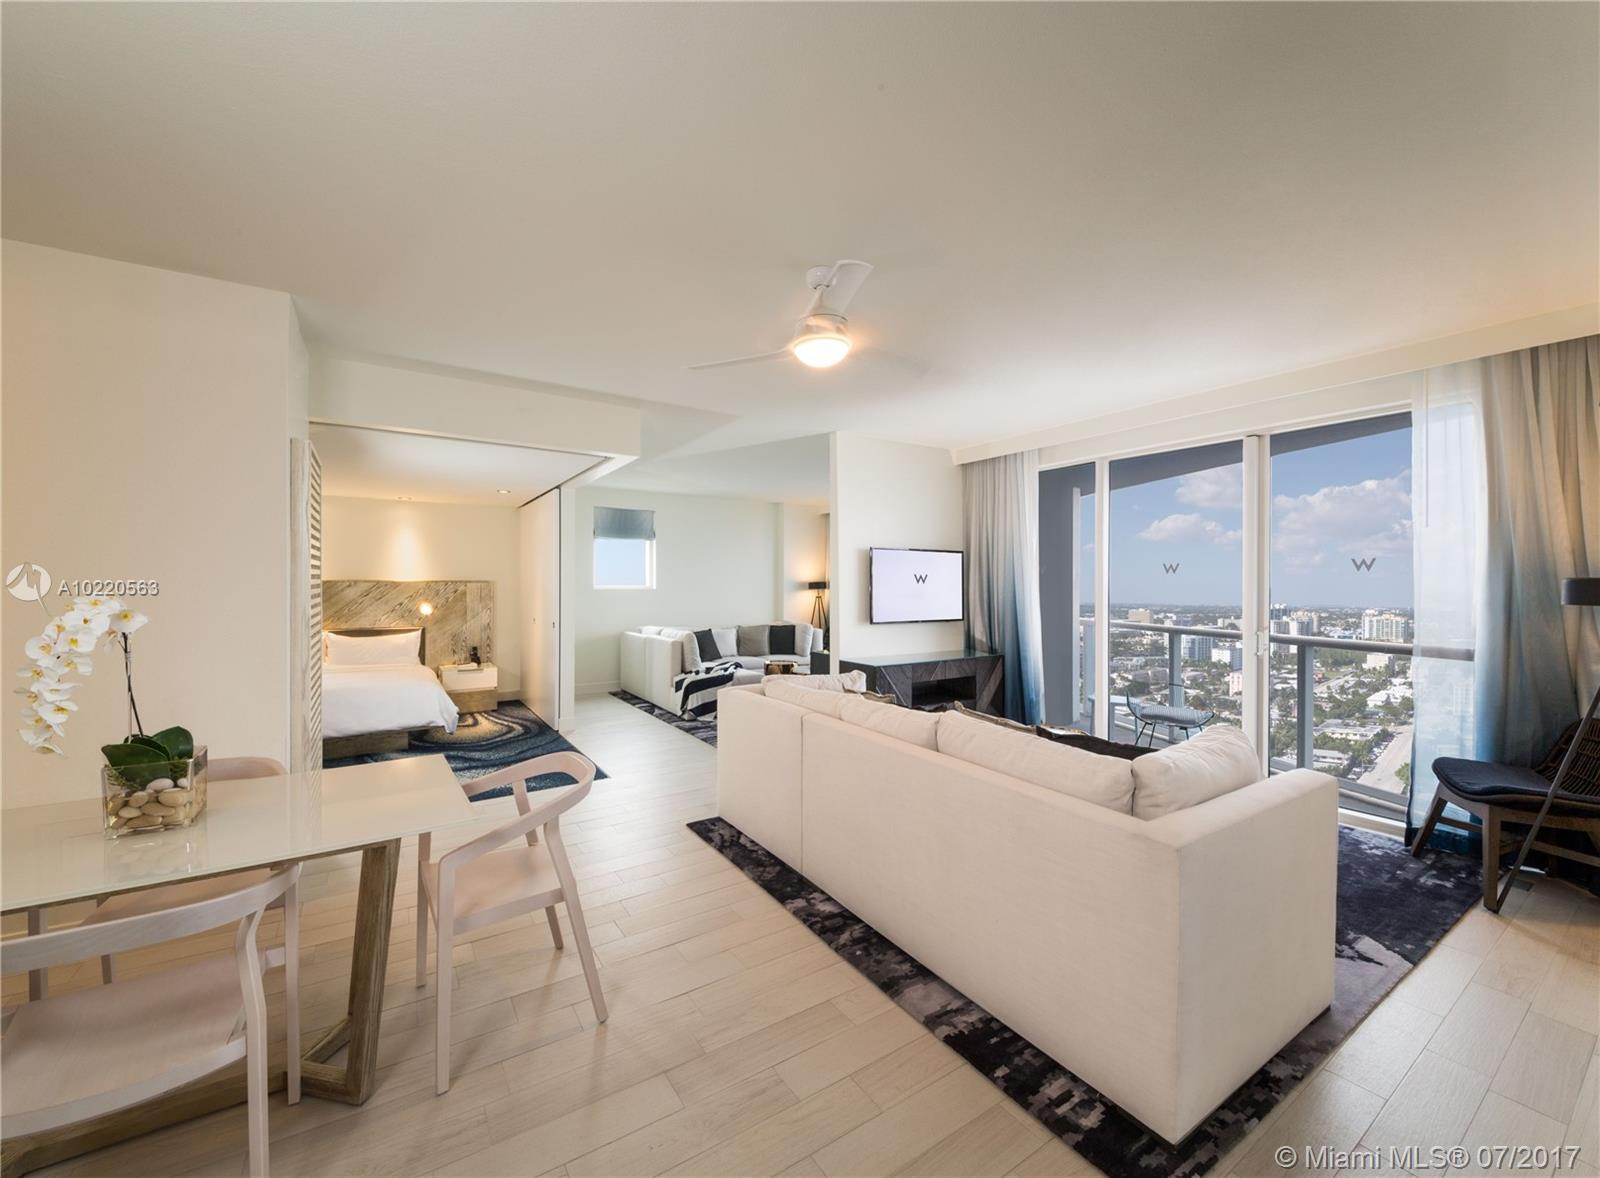 W Fort Lauderdale #1202 - 03 - photo